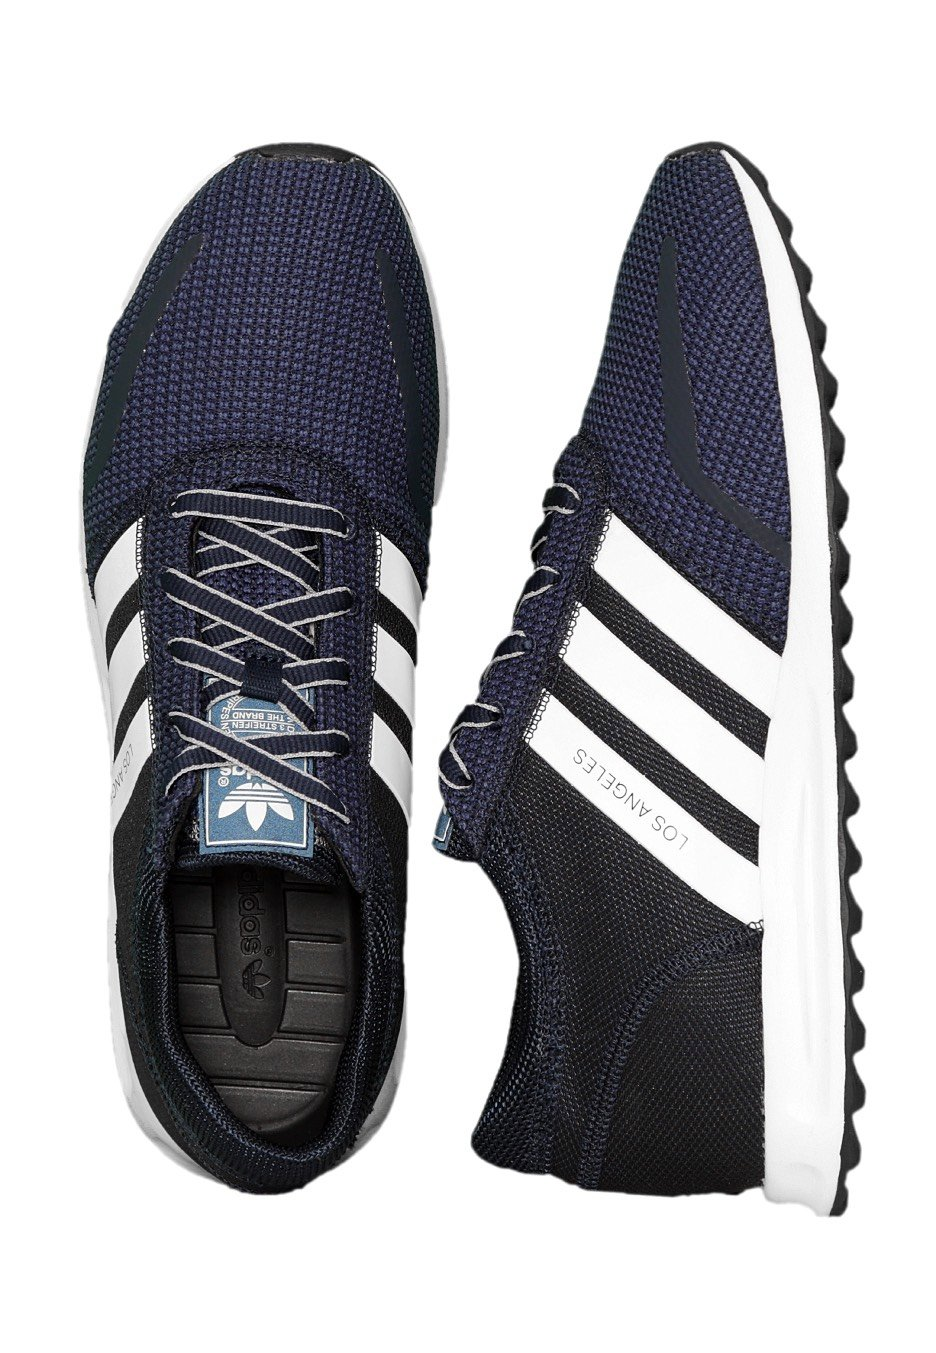 Angeles Whitegranite Los Navyoff Collegiate Schuhe Adidas q5w0S7